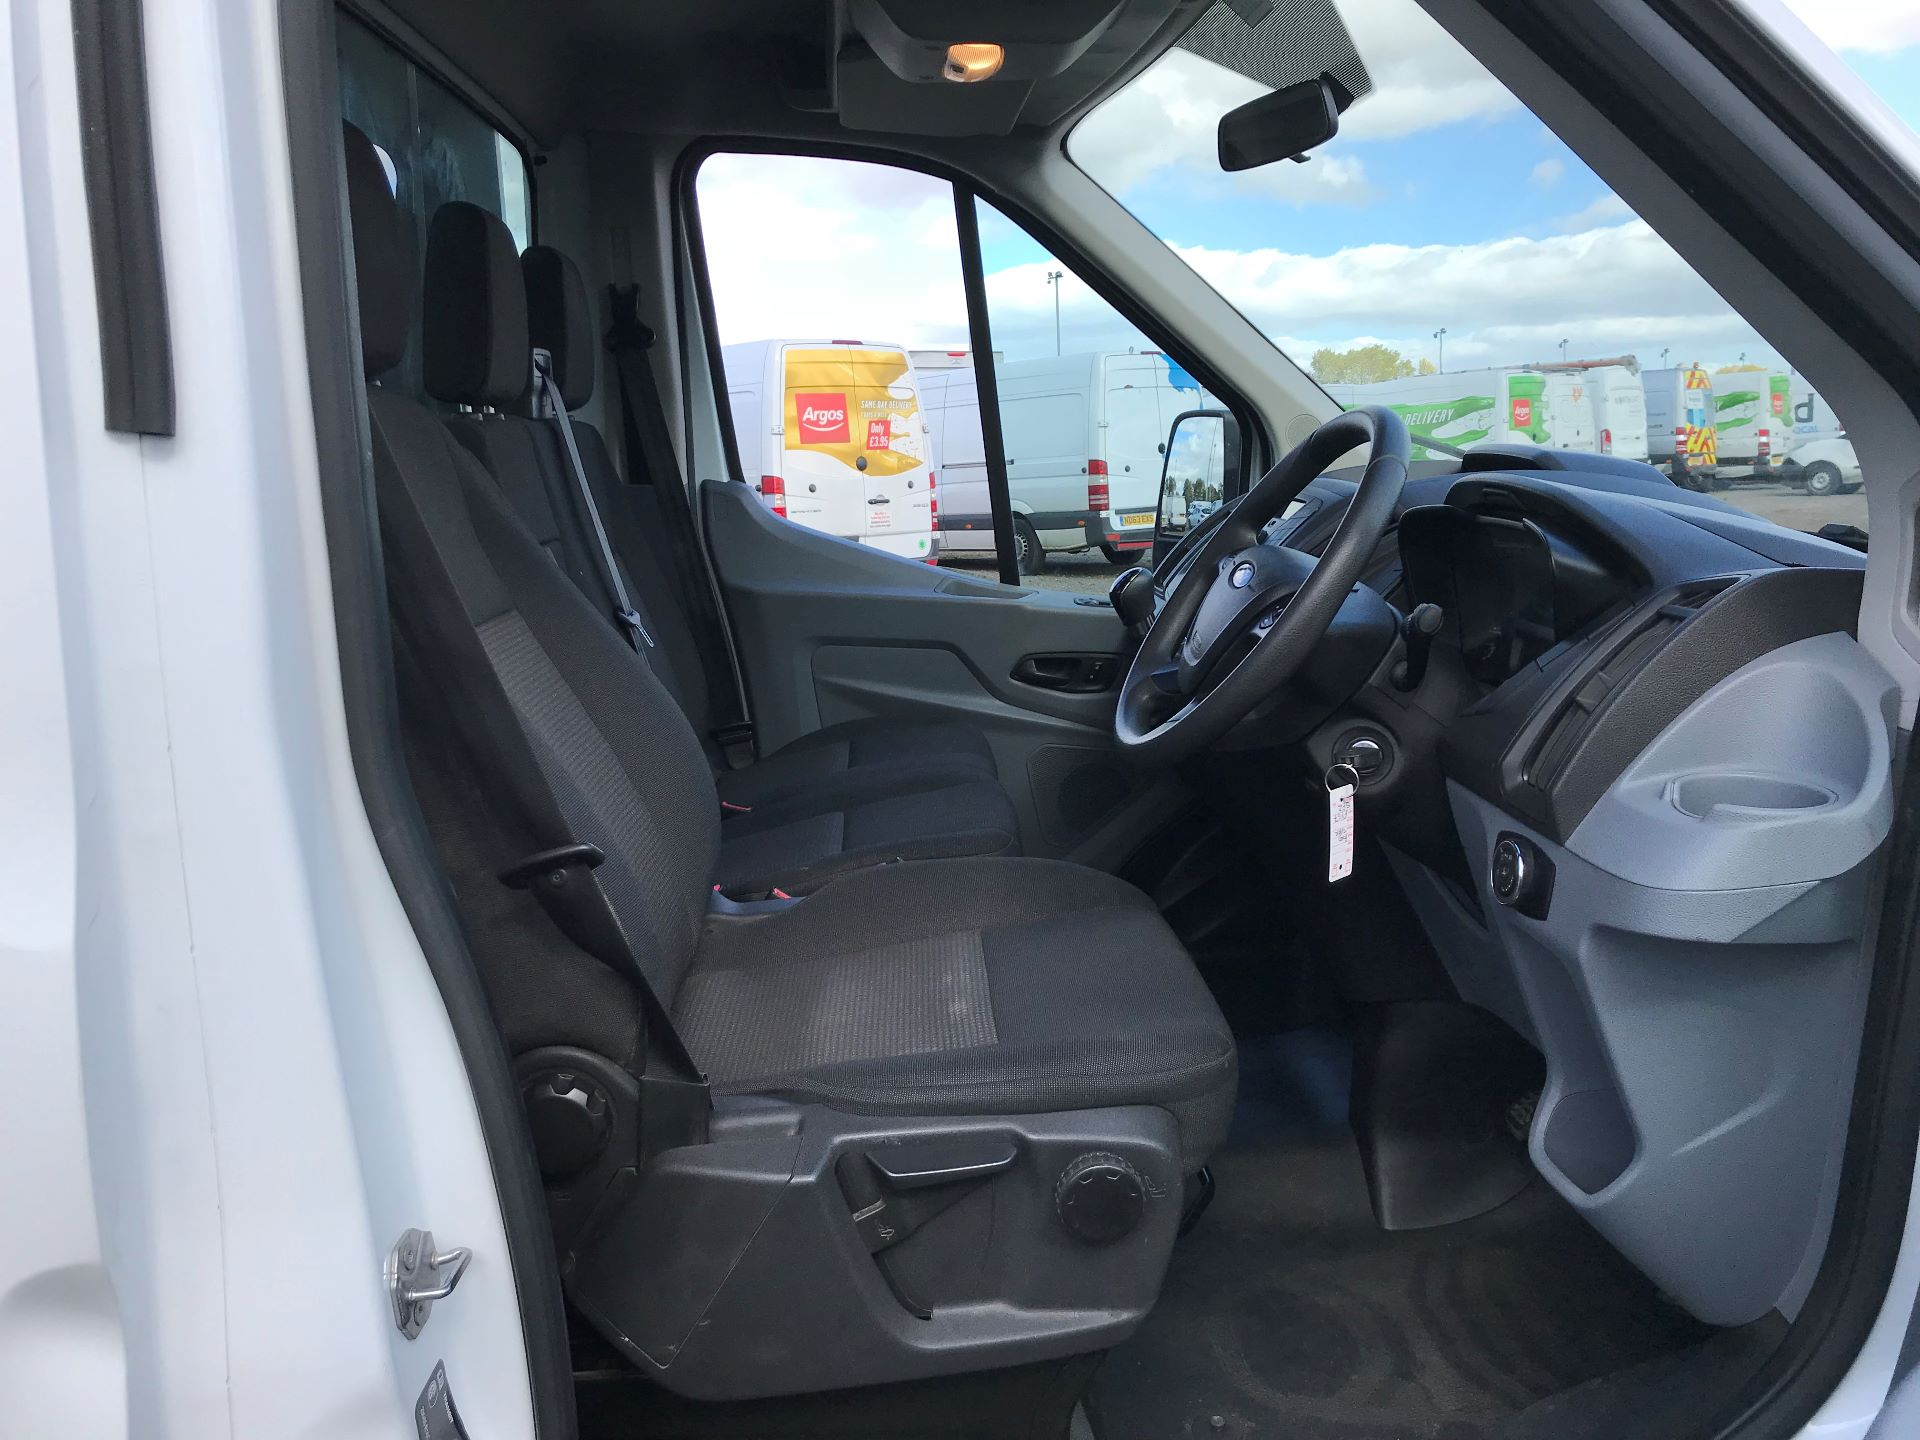 2018 Ford Transit 2.0 Tdci 130Ps Tipper (FY67SPZ) Thumbnail 11